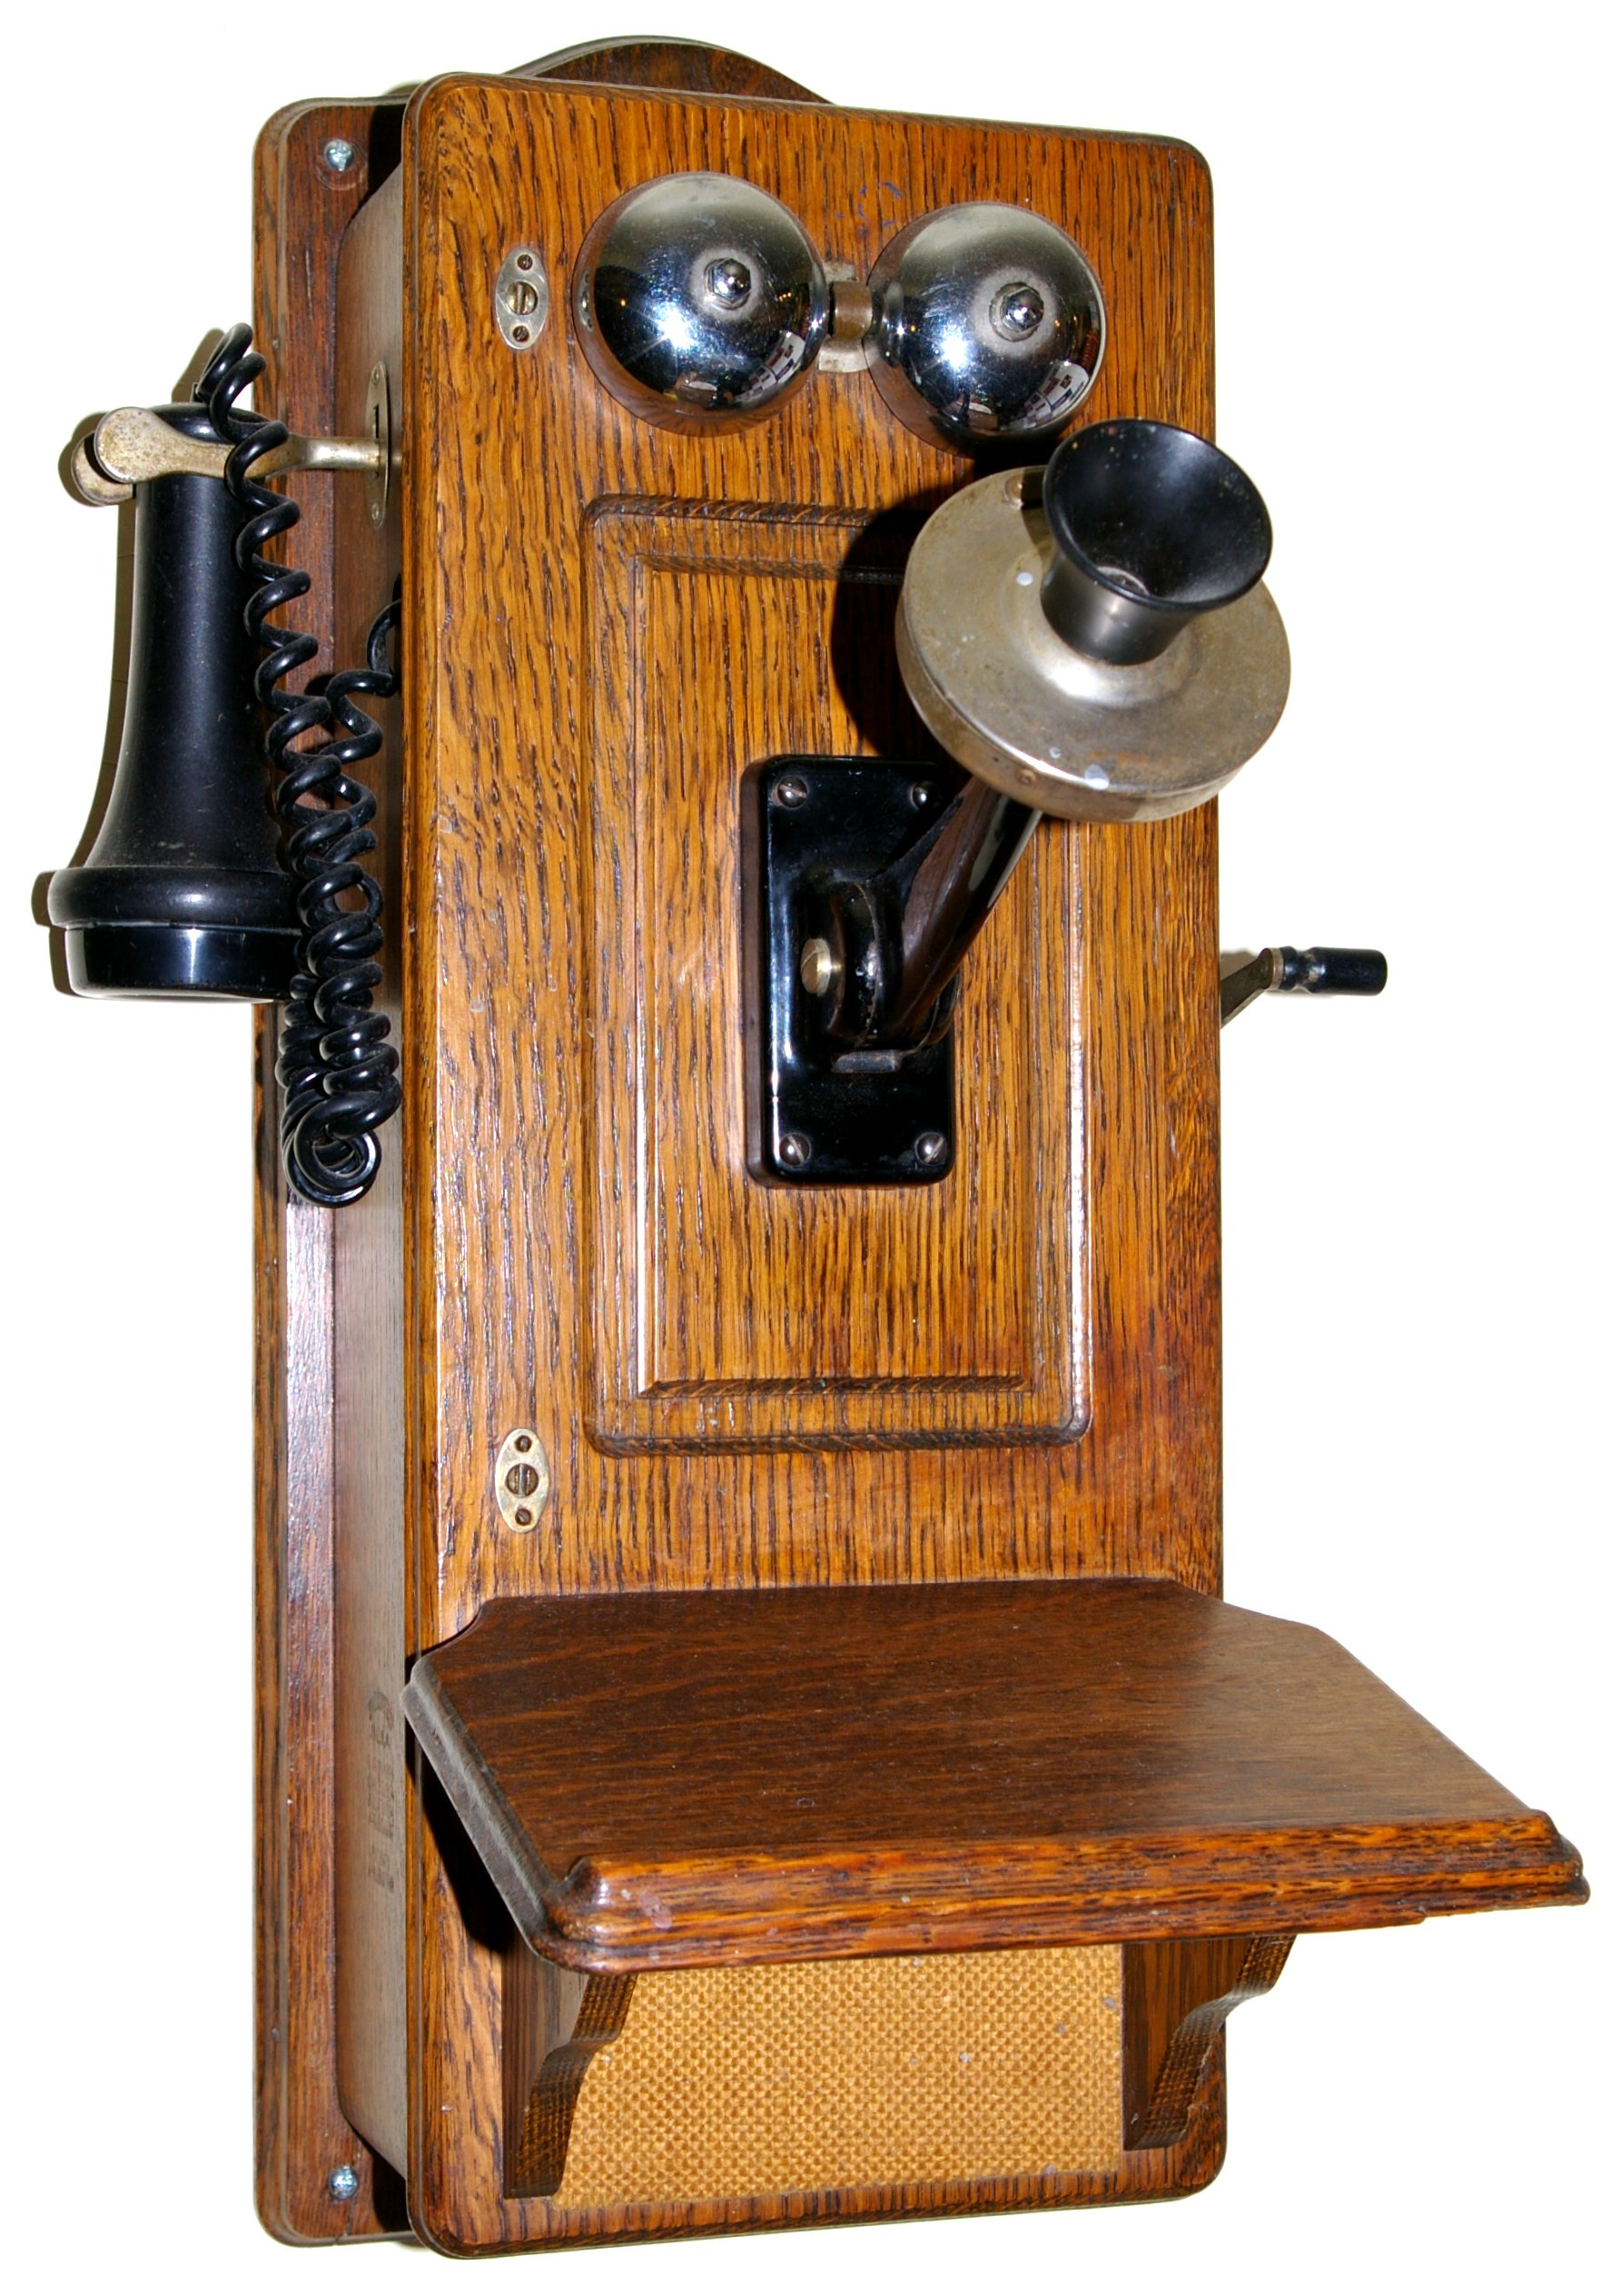 Inspirational Pin Antique Wall Phones Old Dial On Pinterest Antique Wall Phones for Sale Of Brilliant 40 Pics Antique Wall Phones for Sale